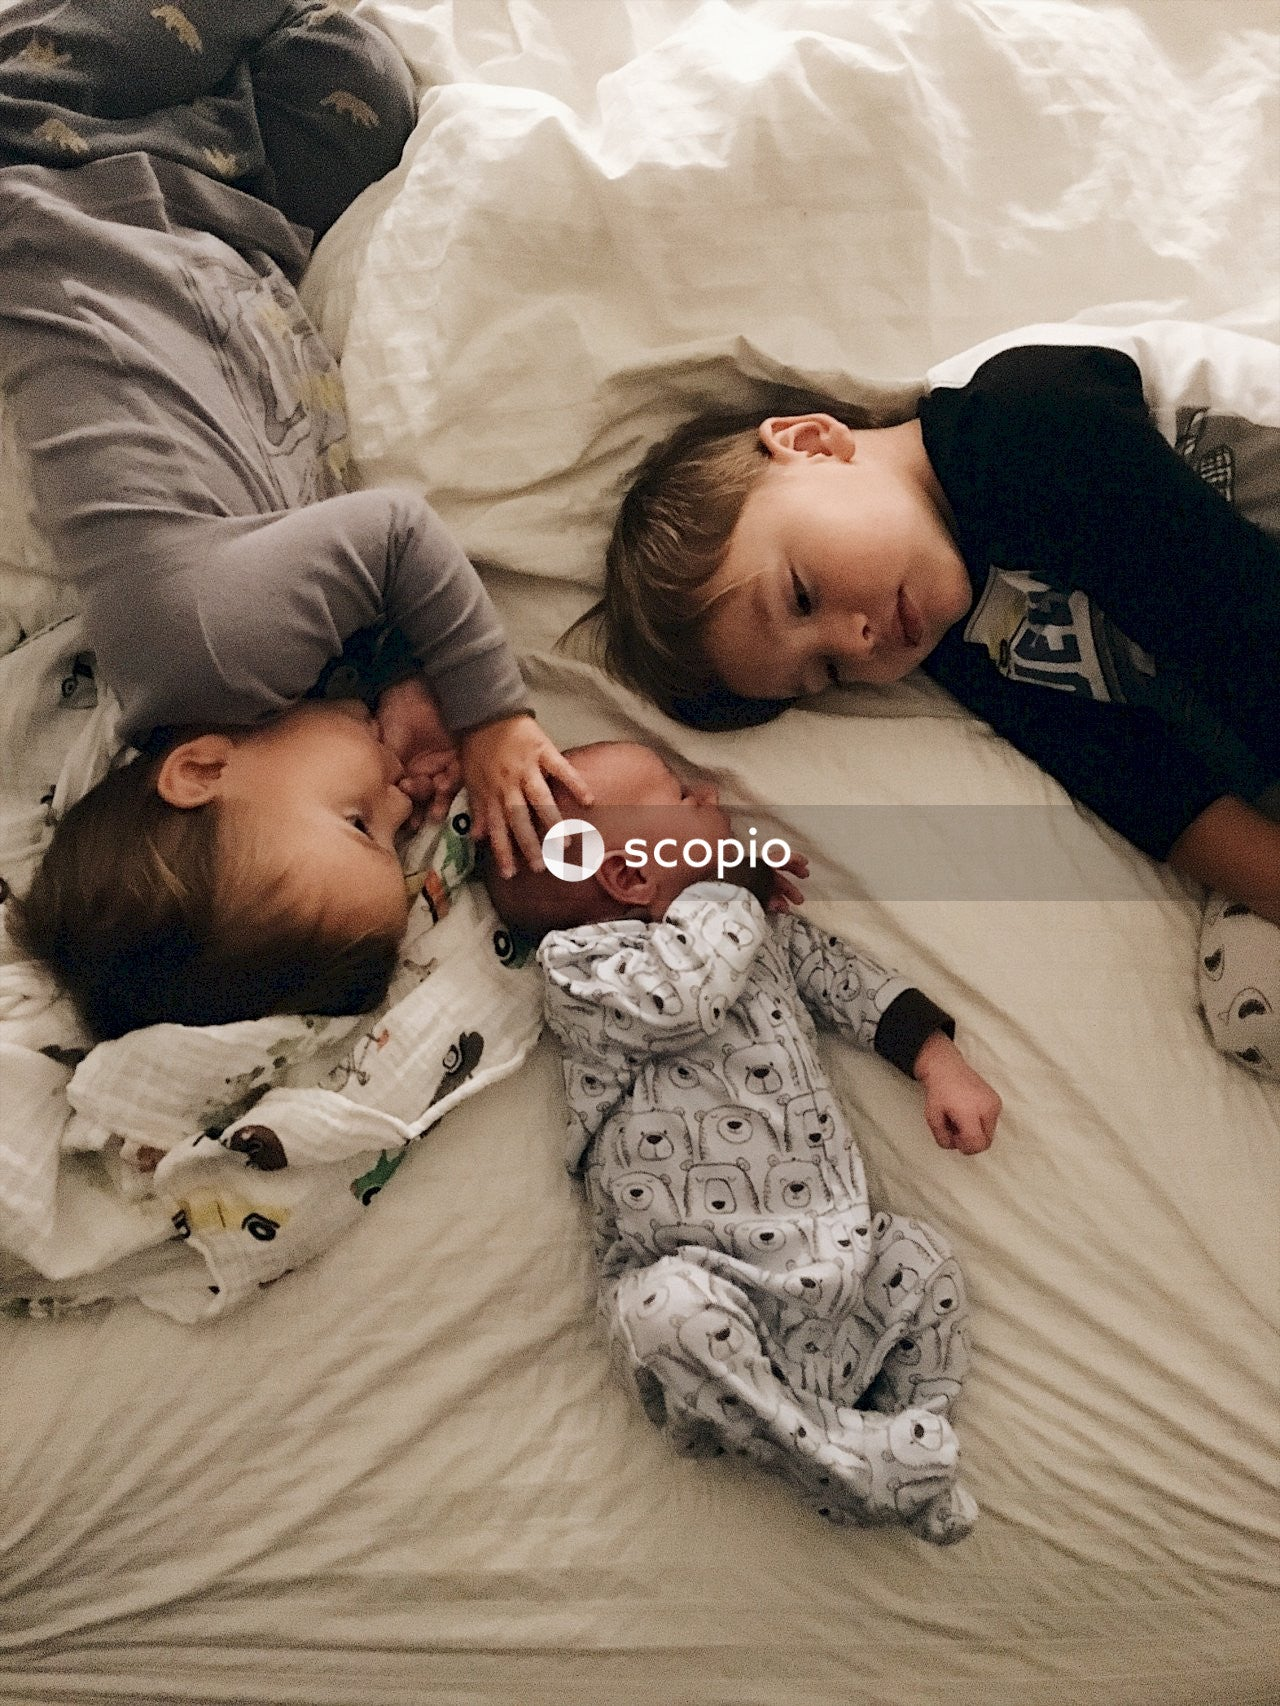 Three children lying in bed together